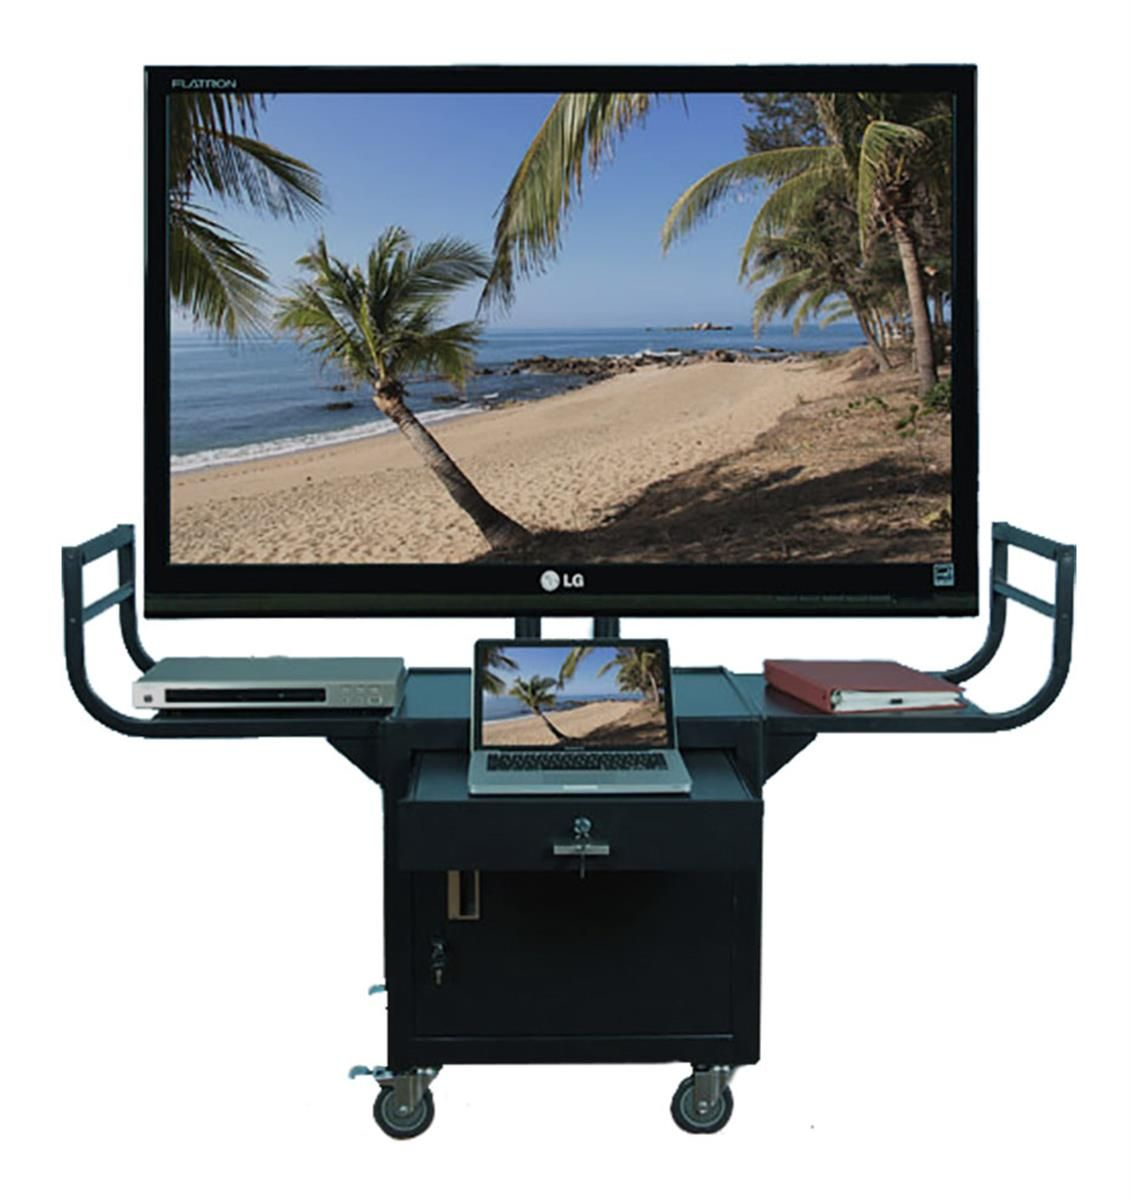 Tv Stand With Wheels Fits Monitors Up To 65 2 Curved Handles